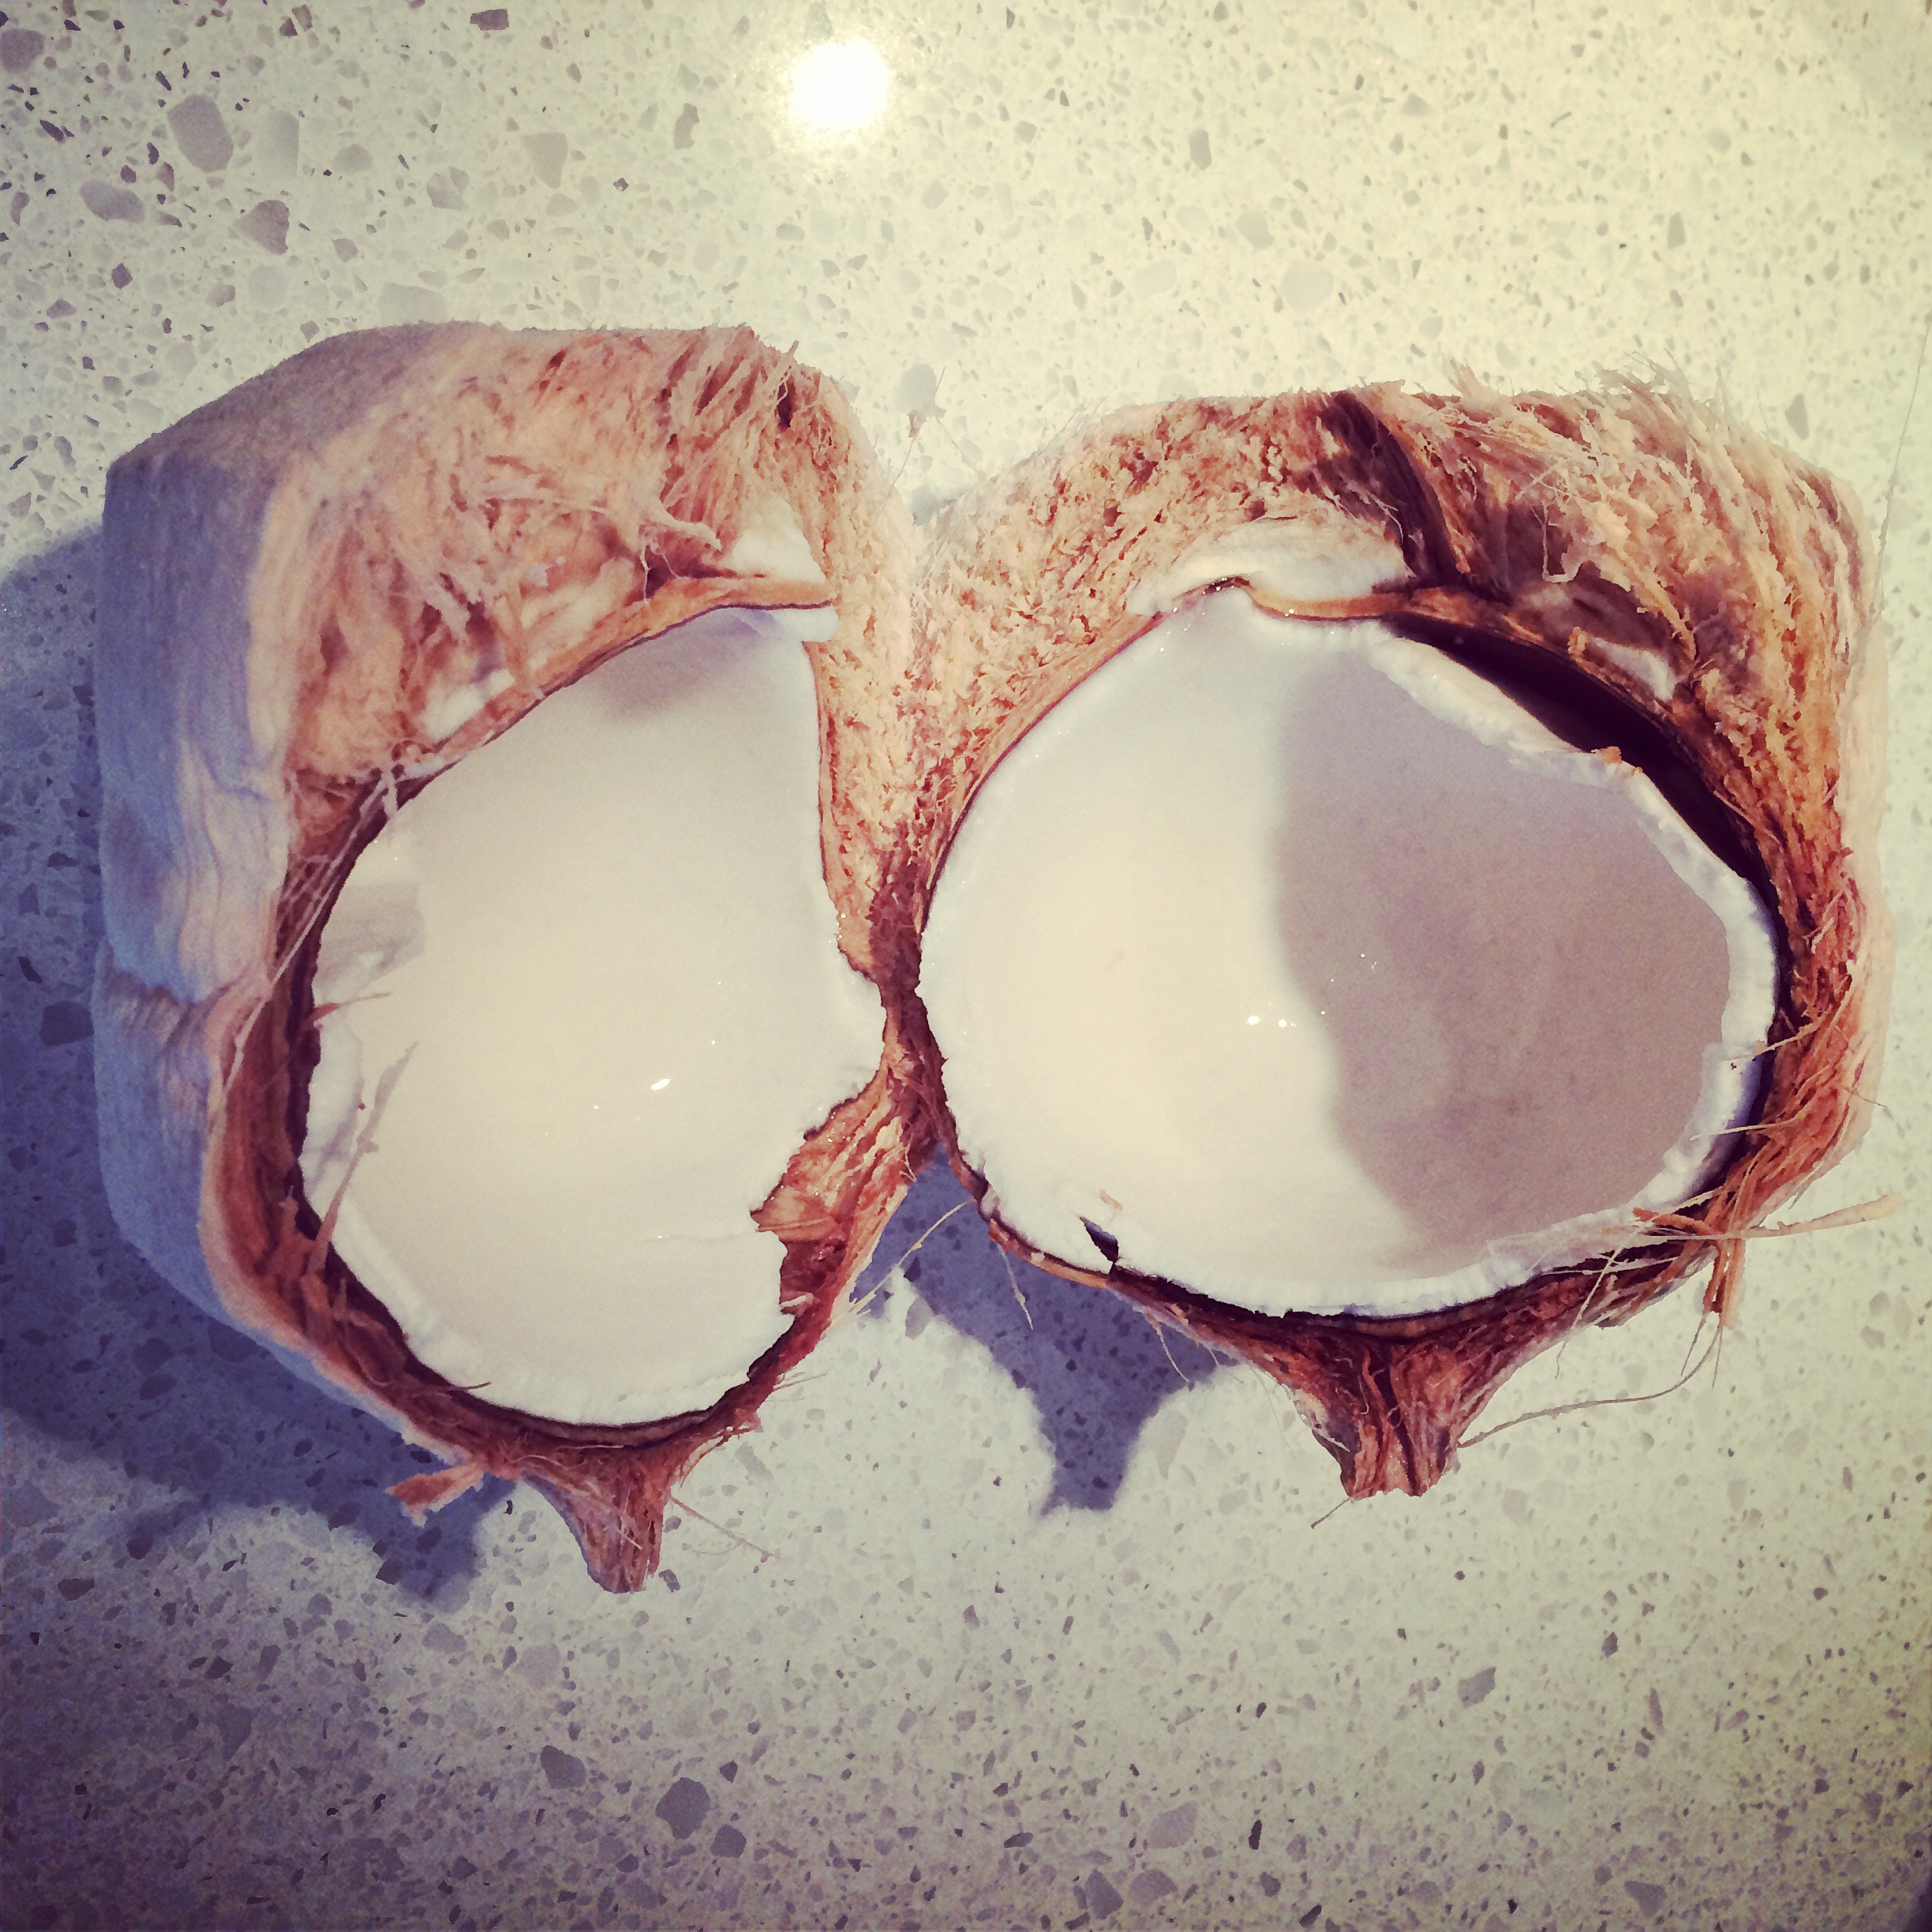 how to open a coconut in the wild